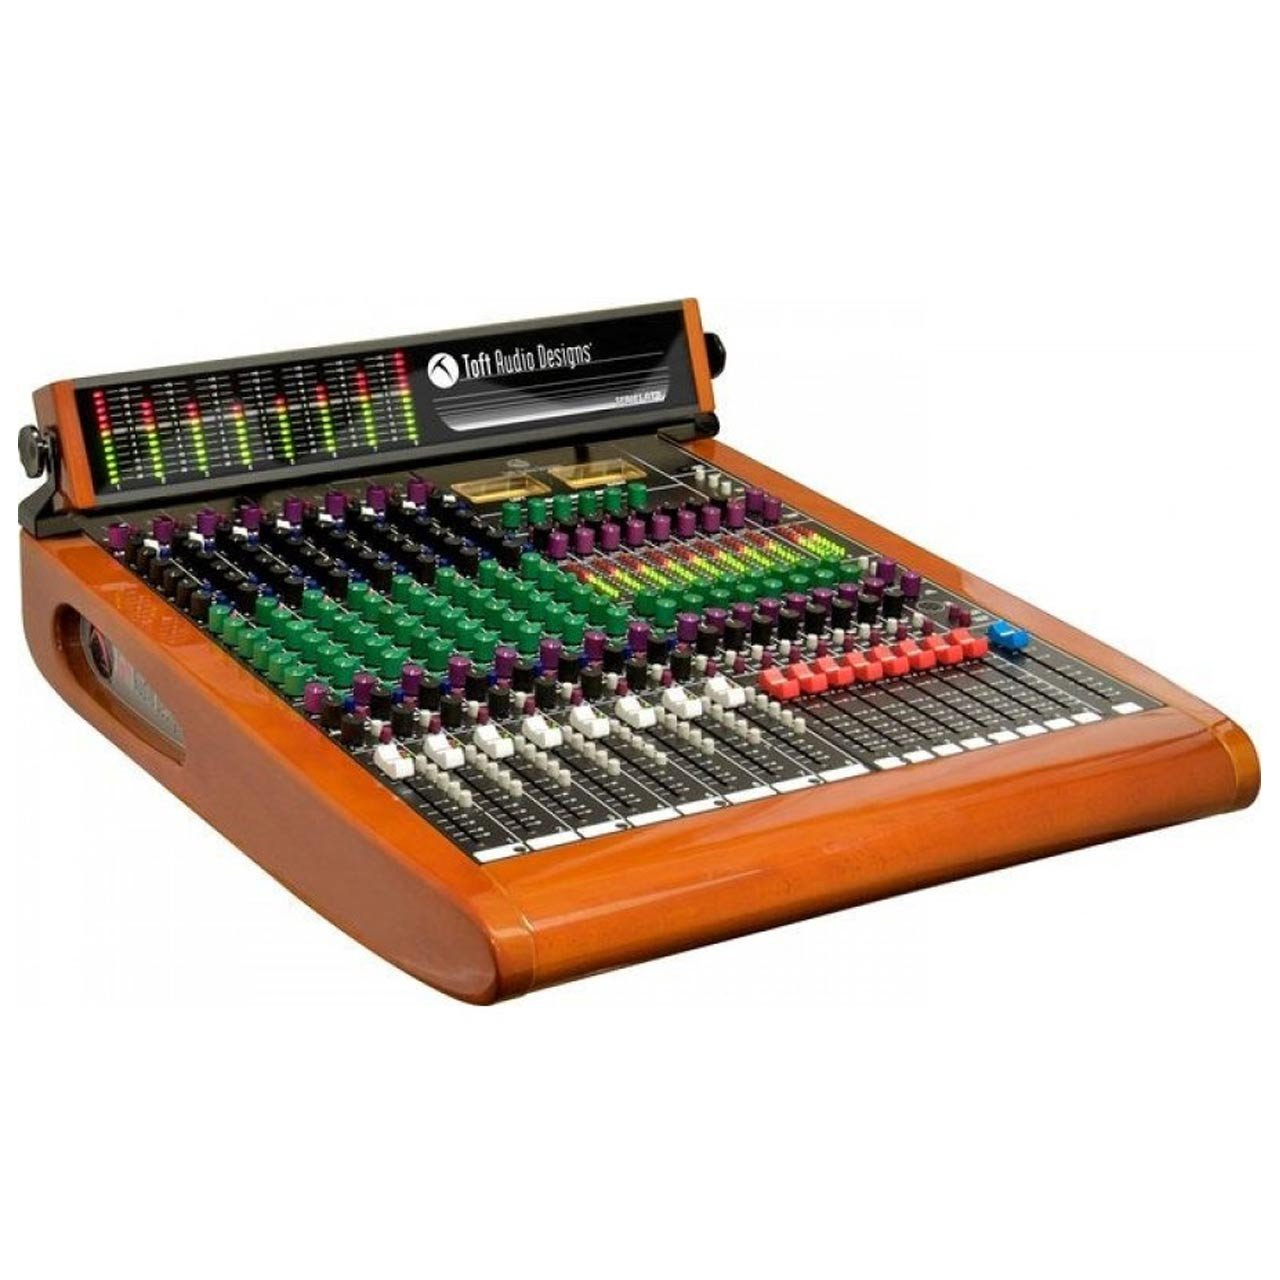 Toft Audio Designs Series ATB08M Console